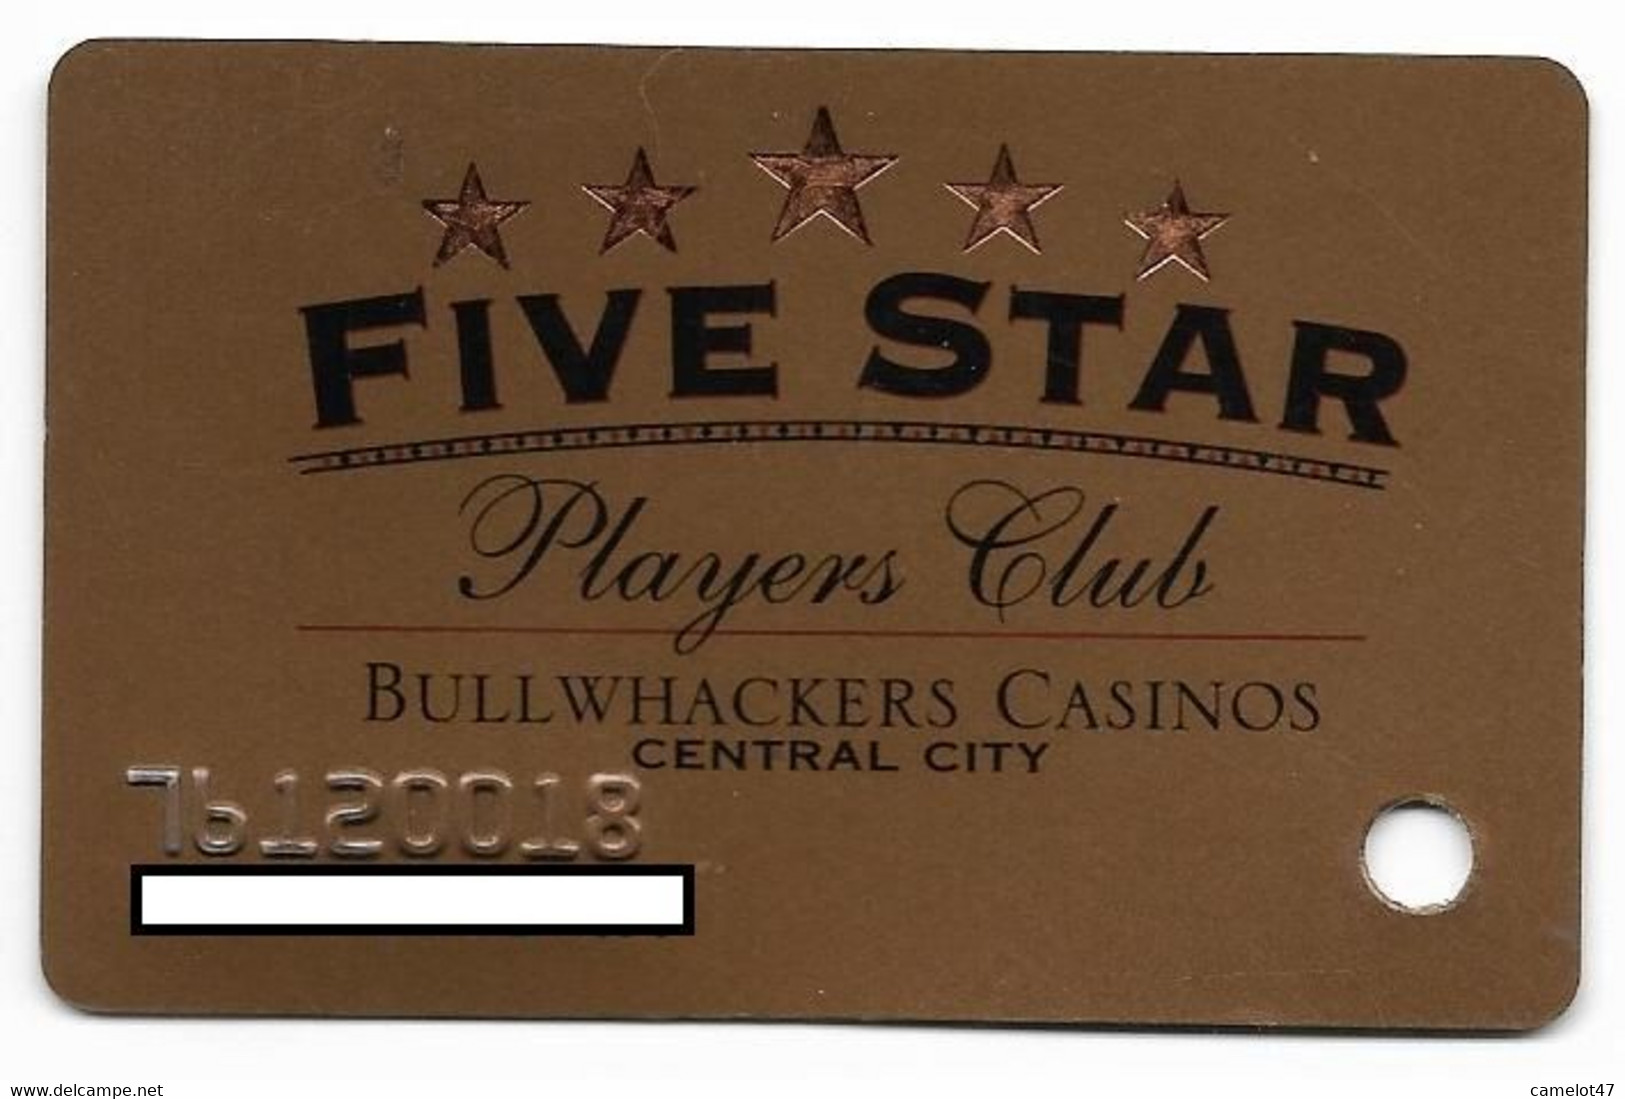 Bullwhackers Casinos, Black Hawk, CO, U.S.A. Used, Older Slot Or Player's Card, # Bullwhackers-2 - Casino Cards